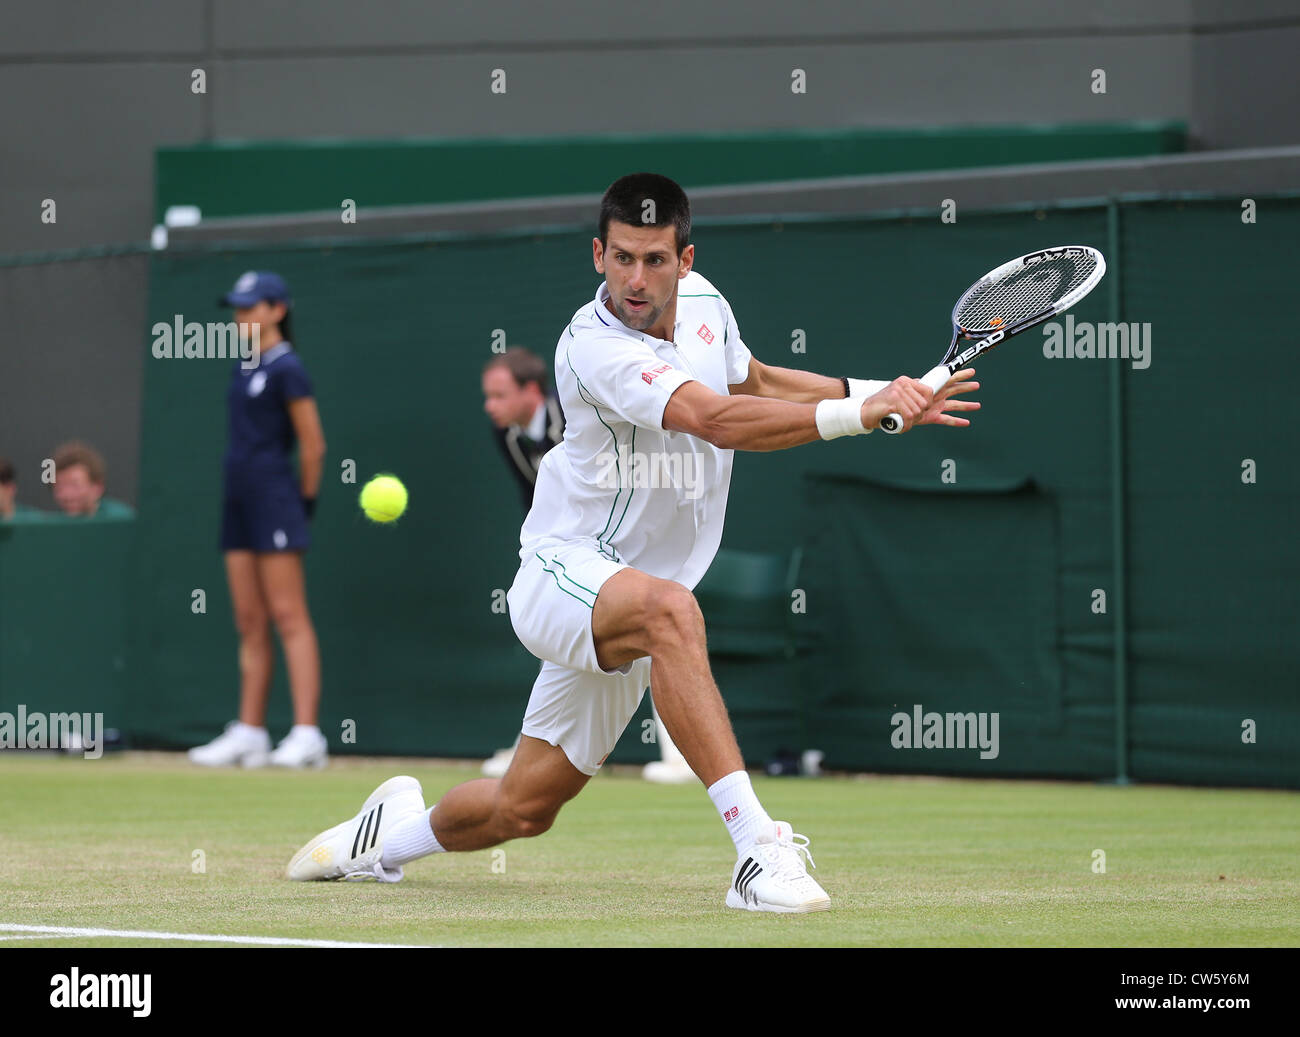 Novak Djokovic (SRB) in action at Wimbledon - Stock Image